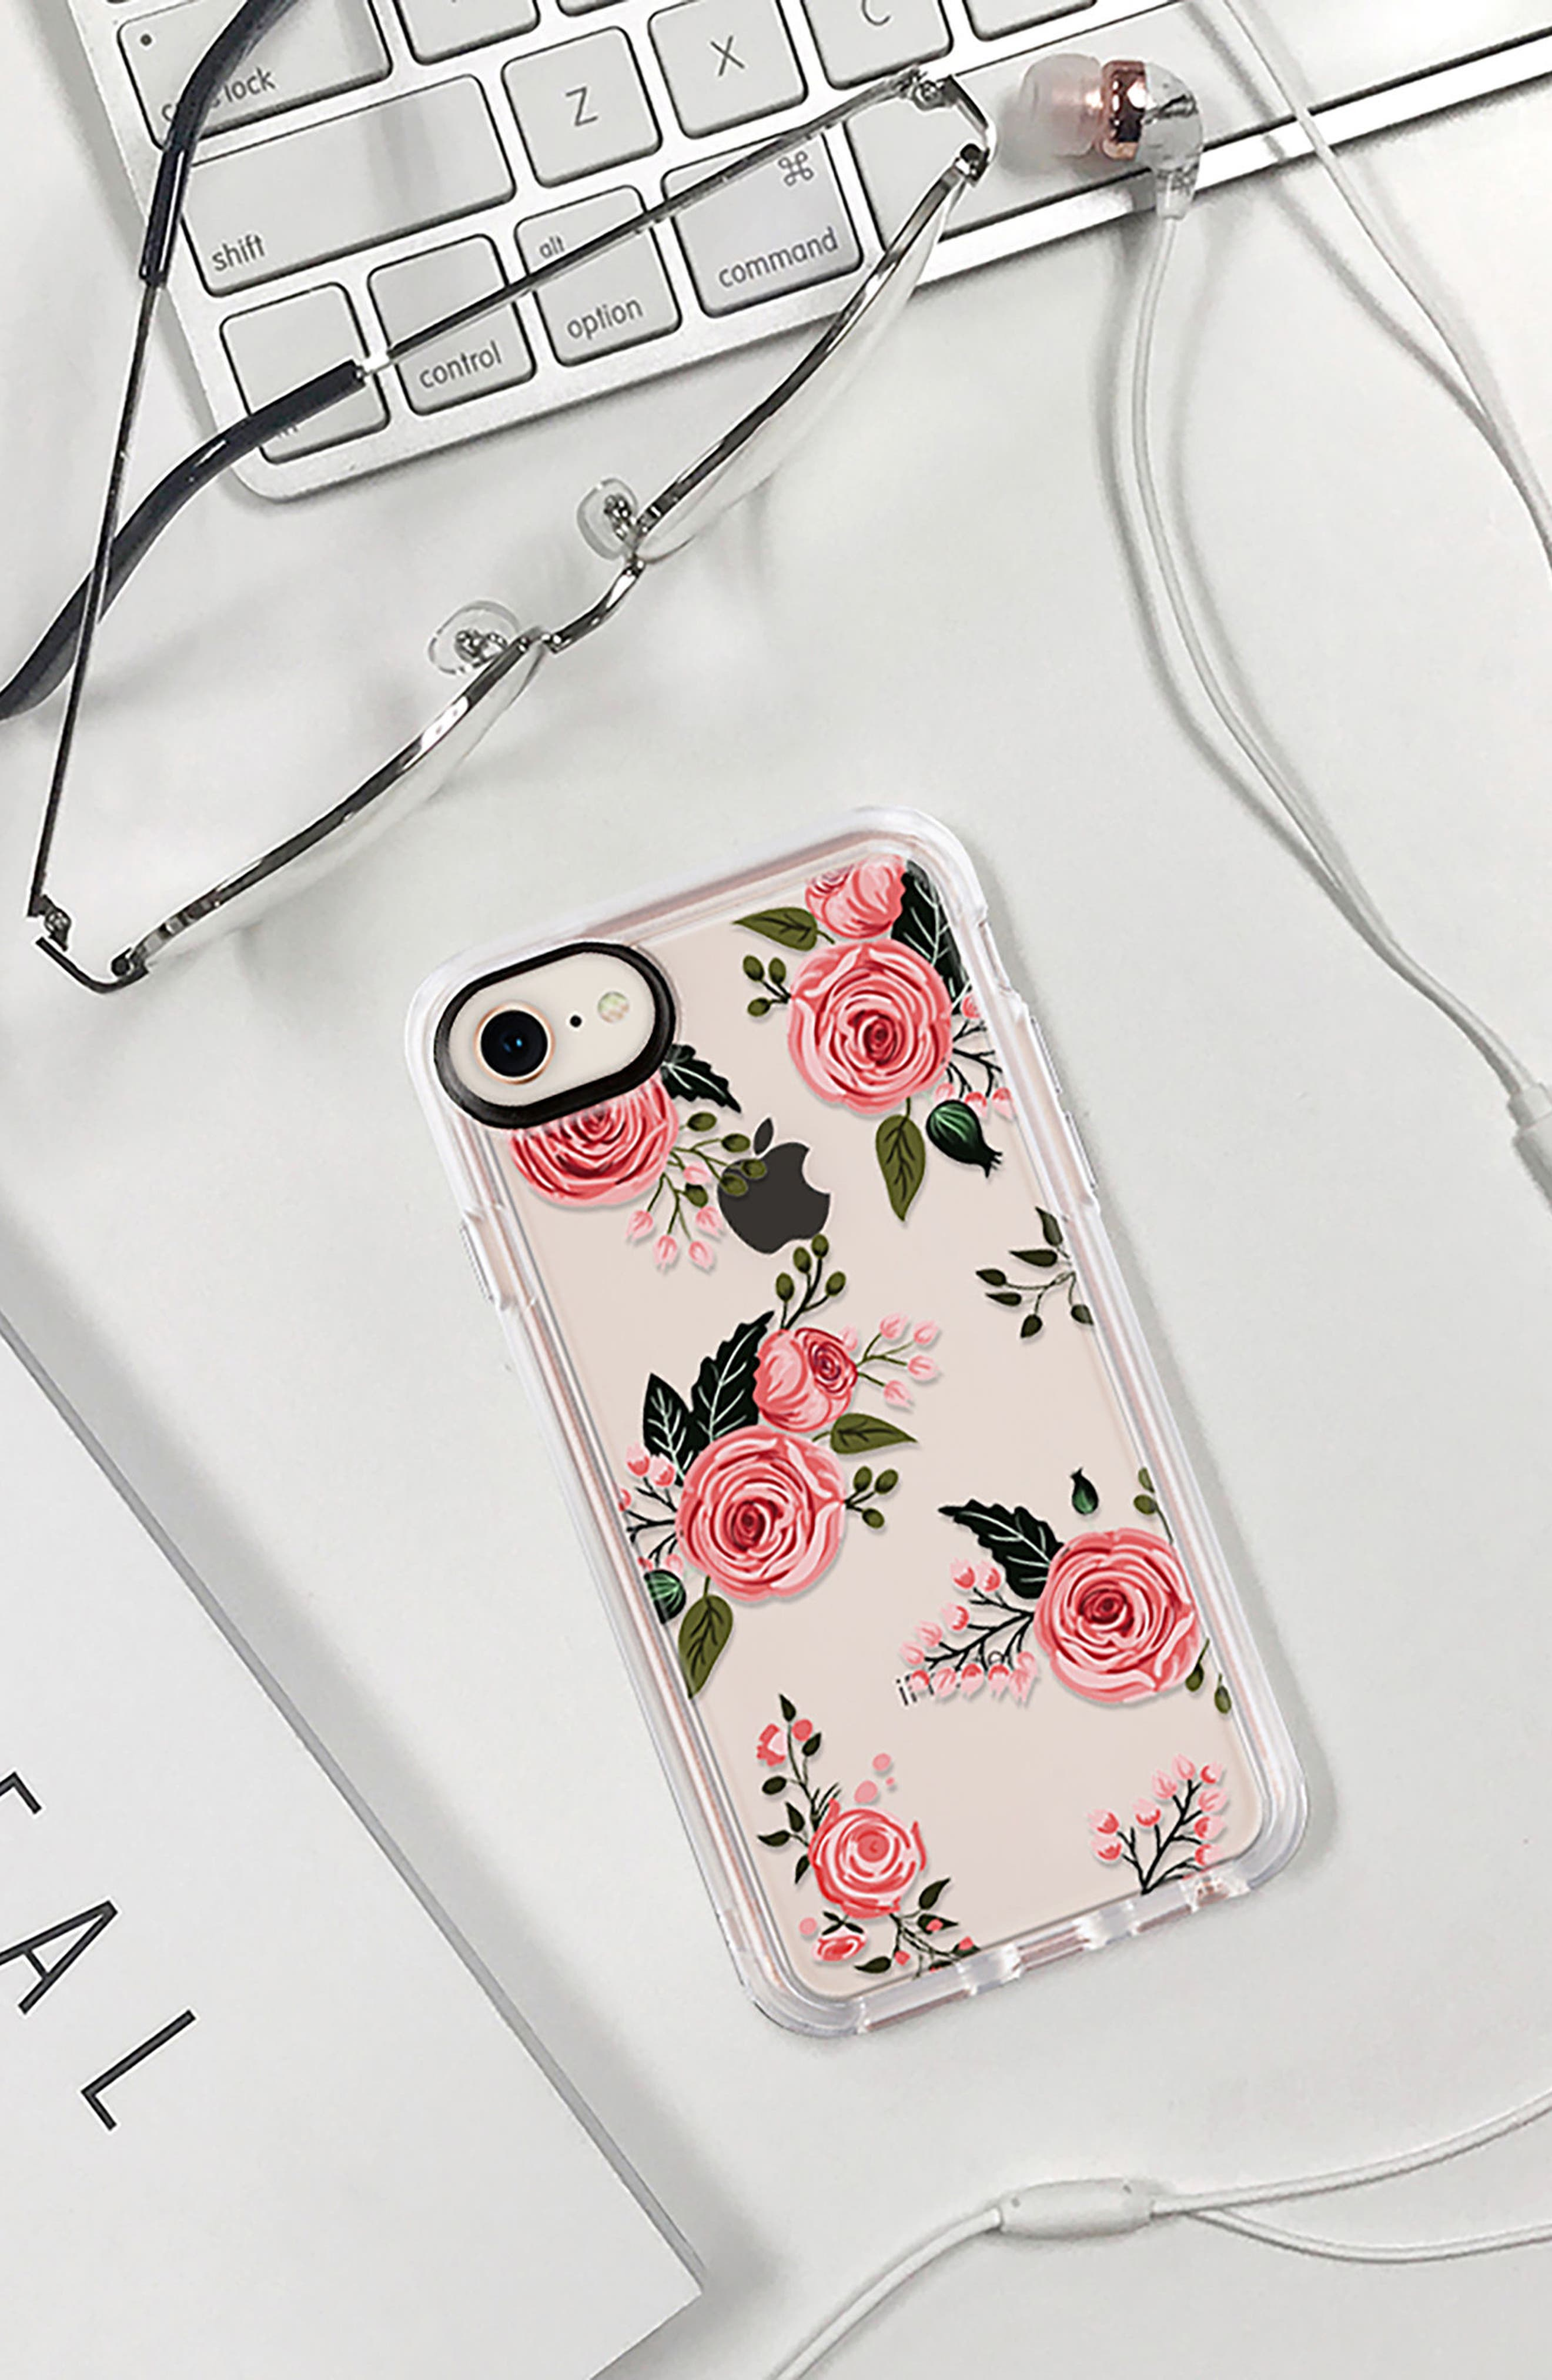 Pink Floral Grip iPhone 7/8 & 7/8 Plus Case,                             Alternate thumbnail 8, color,                             PINK